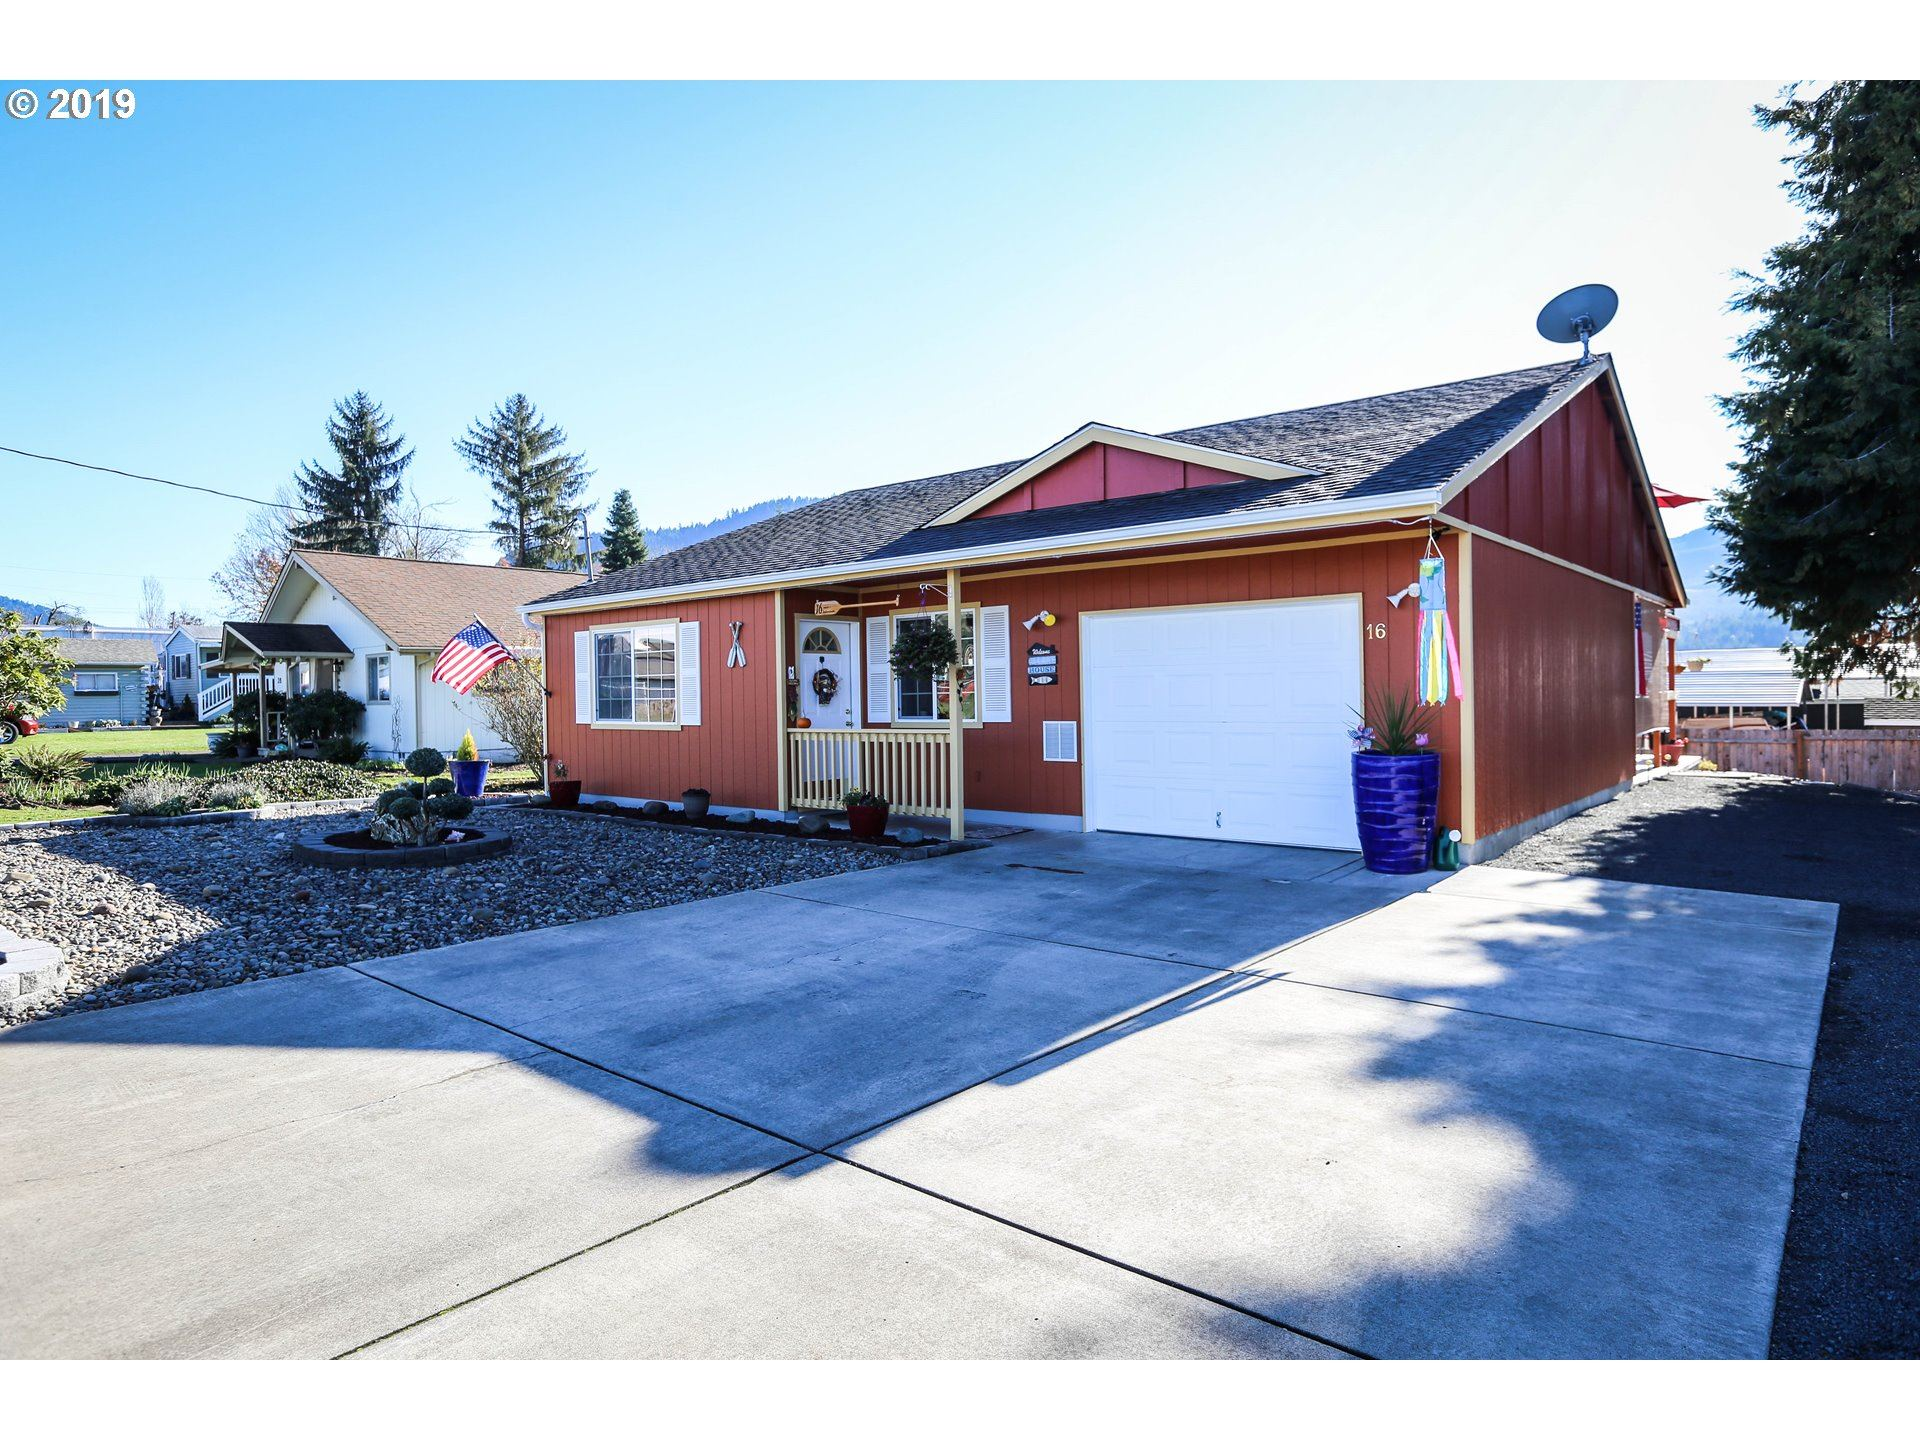 Photo for 16 E LAKEVIEW AVE, Lowell, OR 97452 (MLS # 19159022)